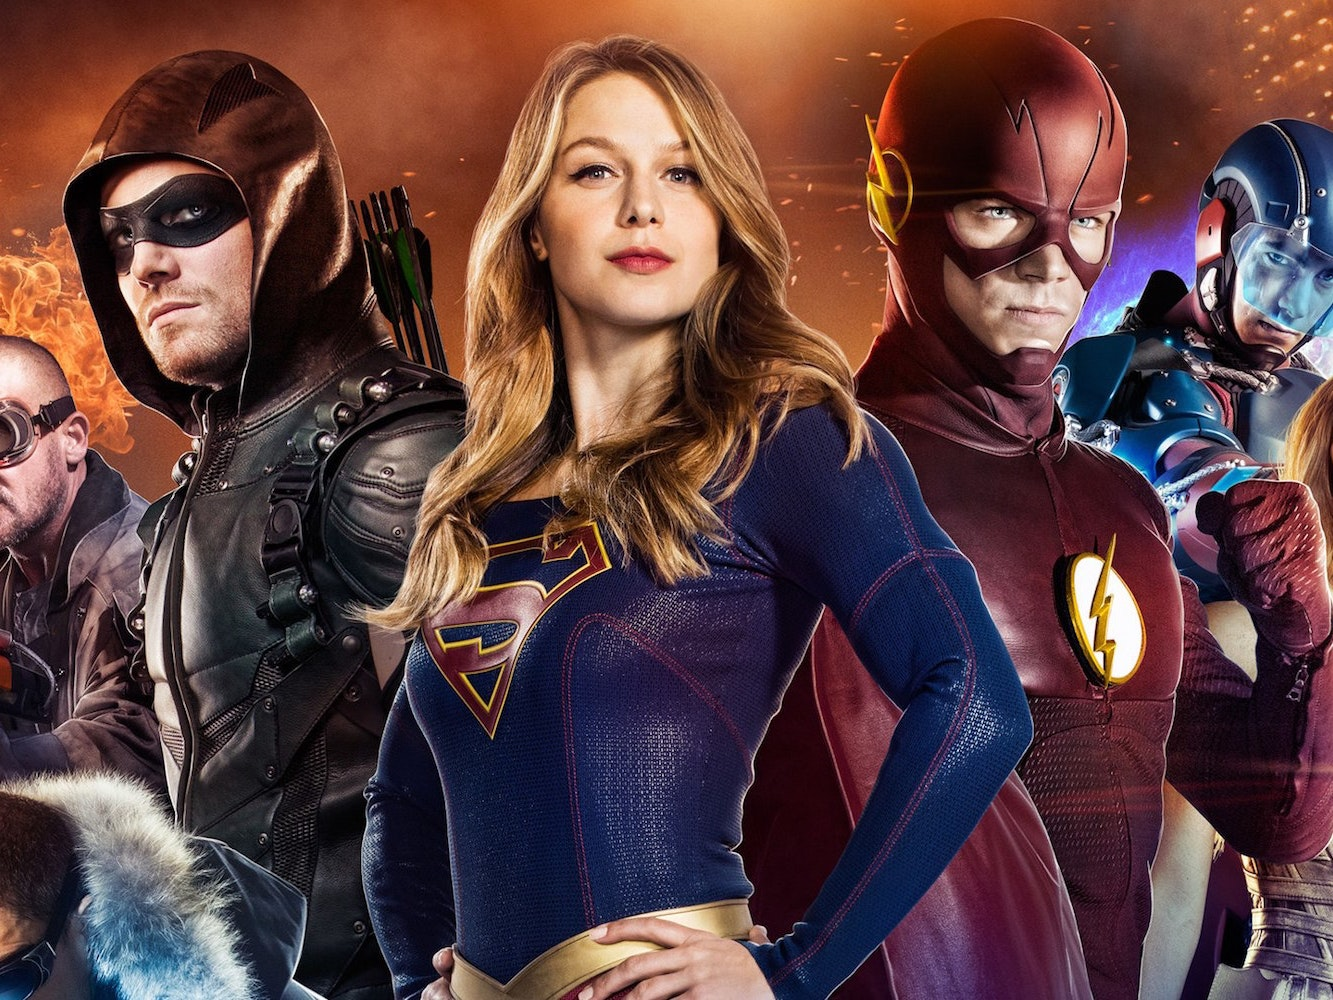 The Extended CWverse Crossover Trailer is Absolutely Amazing